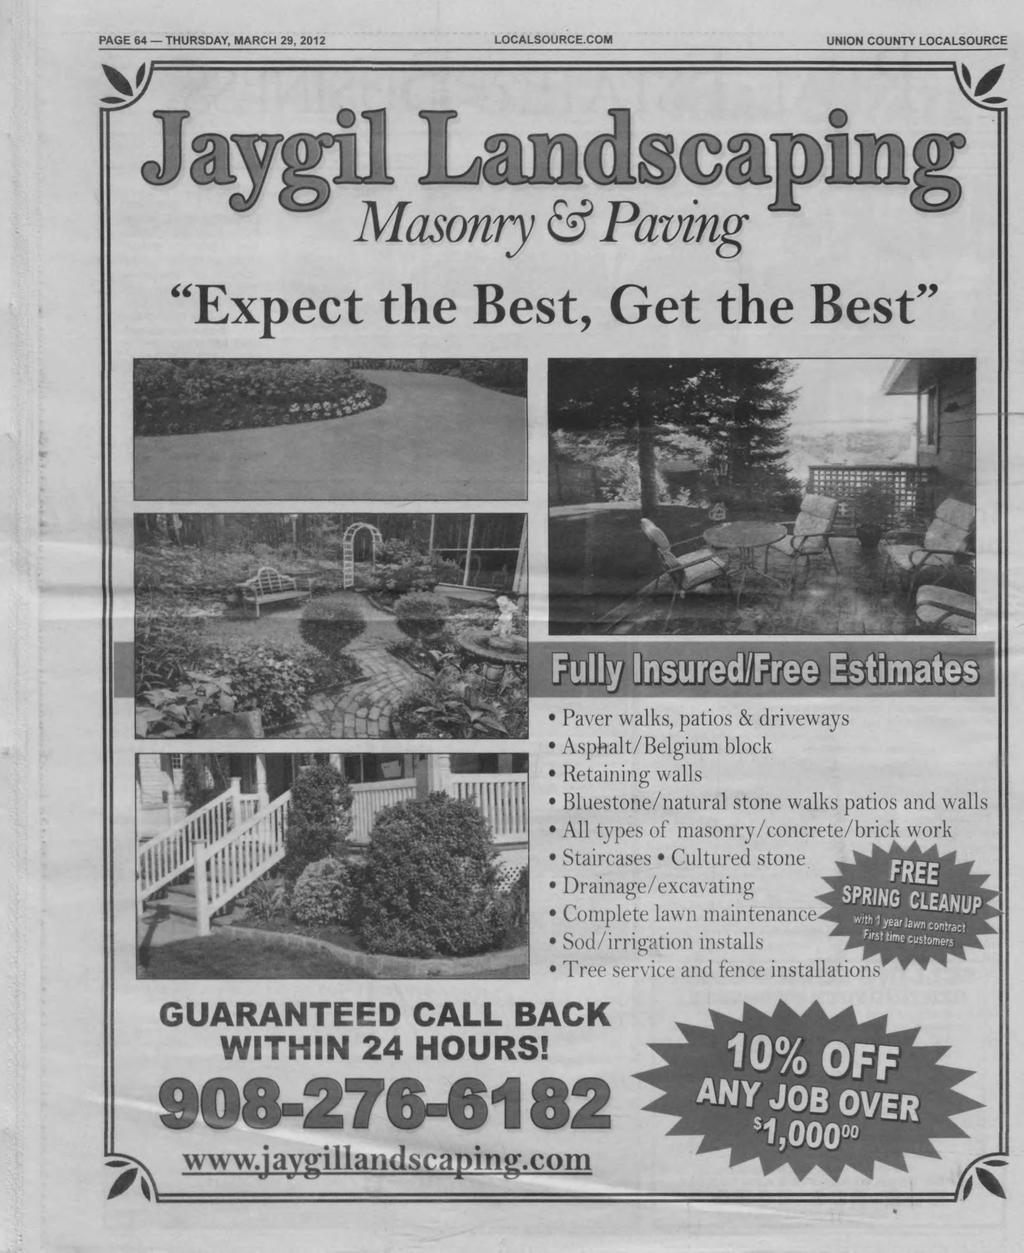 PAGE 64 THURSDAY, MARCH 29, 2012 LOCALSOURCE.COM COUNTY LOCALSOURCE Masonry & Paving Expect the Best, Get the Best!^v GUARANTEED CALL BACK WITHIN 24 HOURS! 908-276-6182 www.jaygillandscaping.